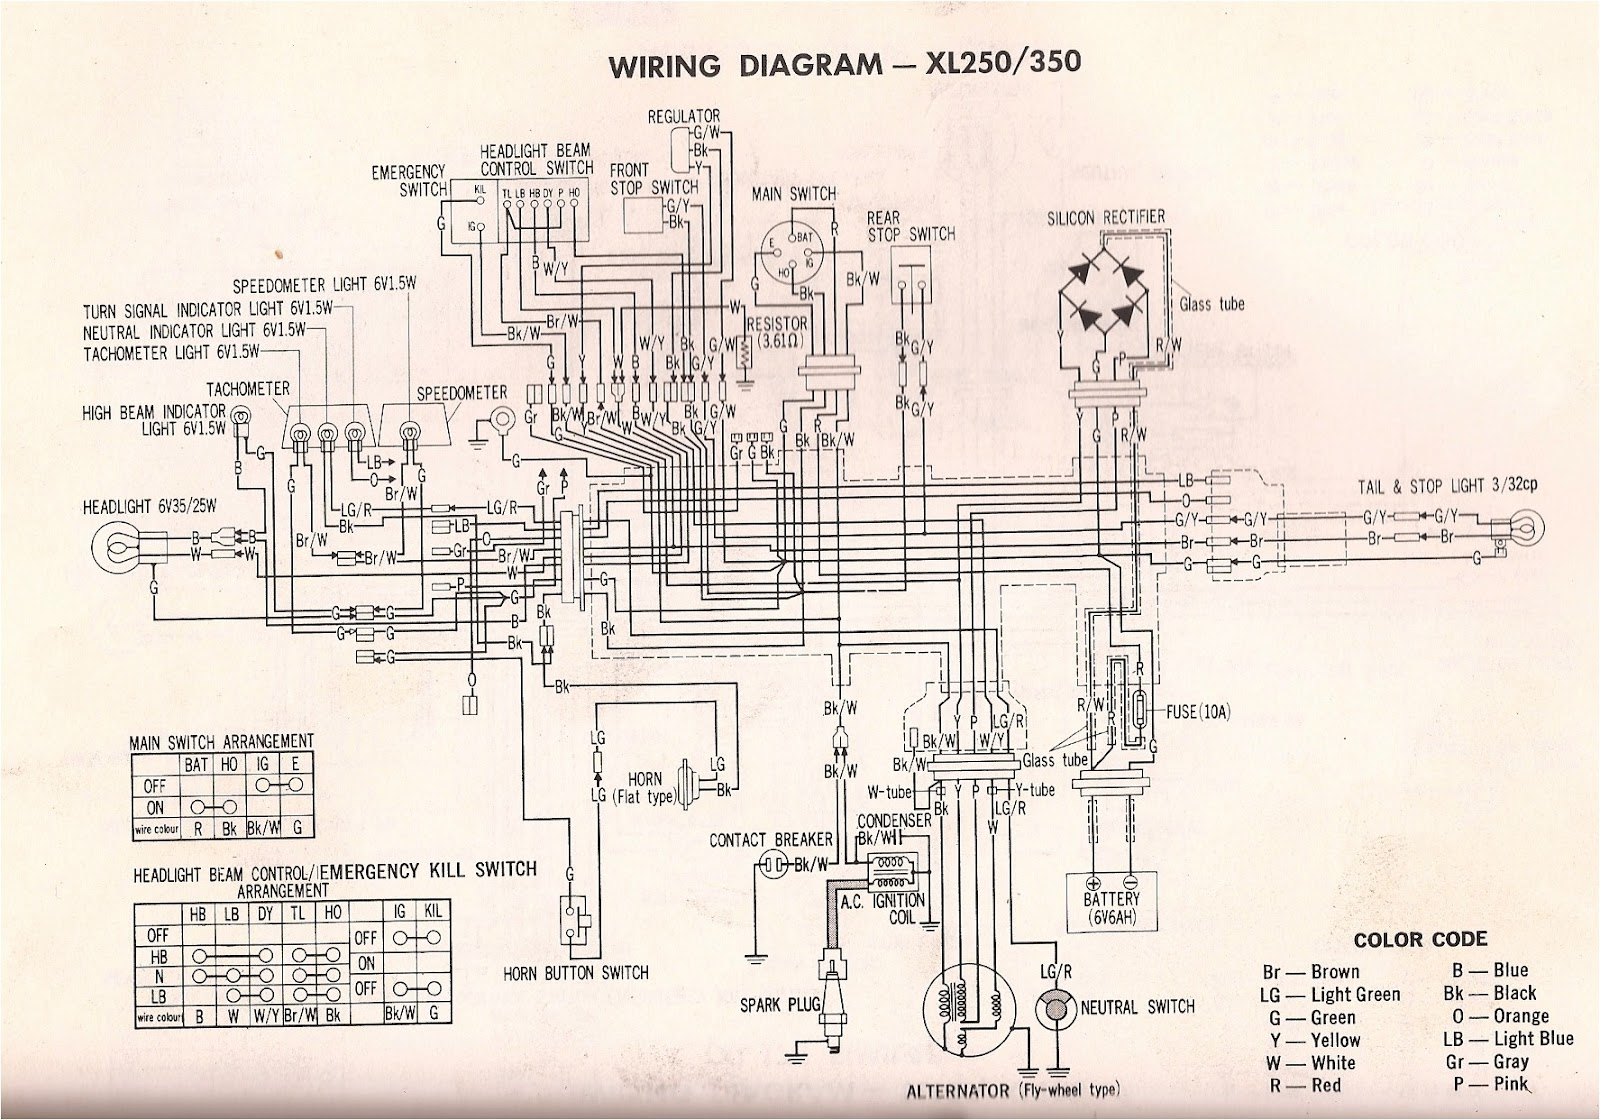 XL350+Wiring+diagram+S r4l xl350 wiring diagram (and xl250) honda mr 50 wiring diagram at panicattacktreatment.co